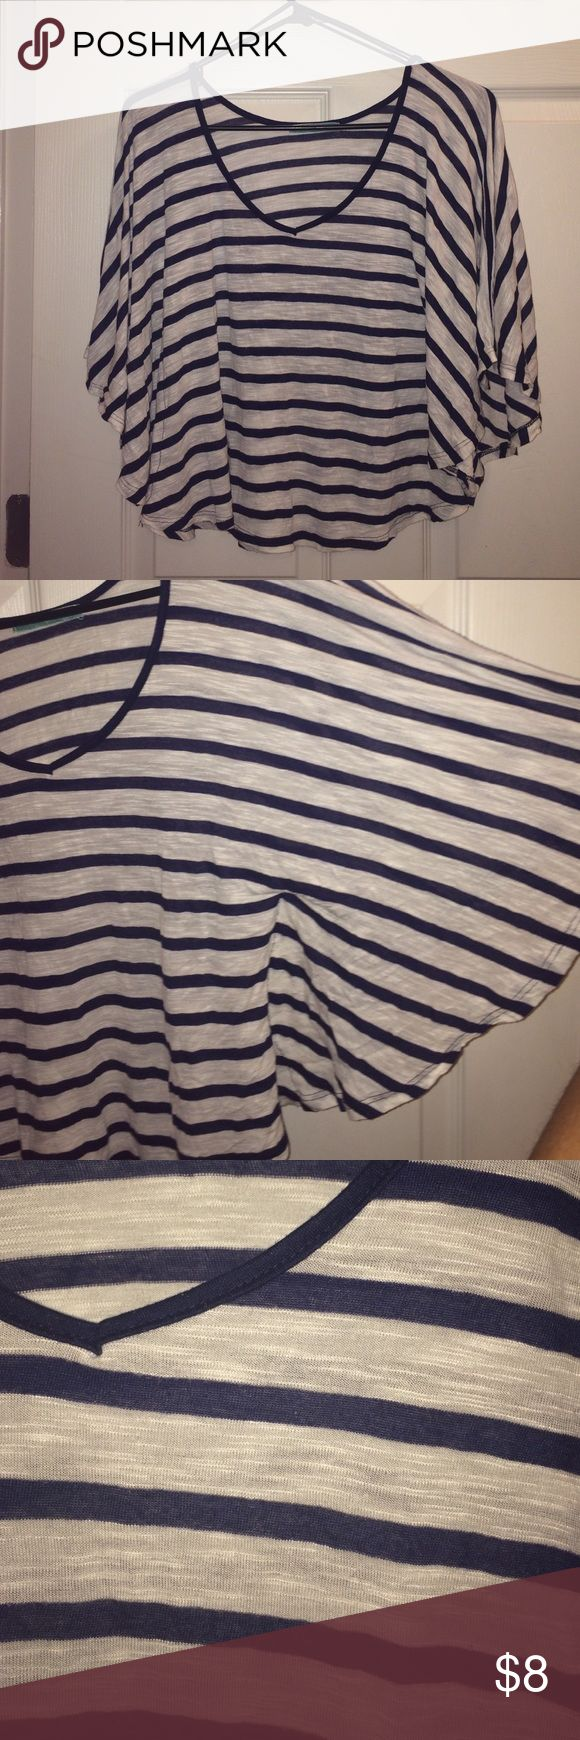 Navy Blue and white batwing low crop top NEVER WORN. In EXCELLENT condition ✅ navy blue strip . Batwing sleeves . LARGE. Tops Tees - Short Sleeve